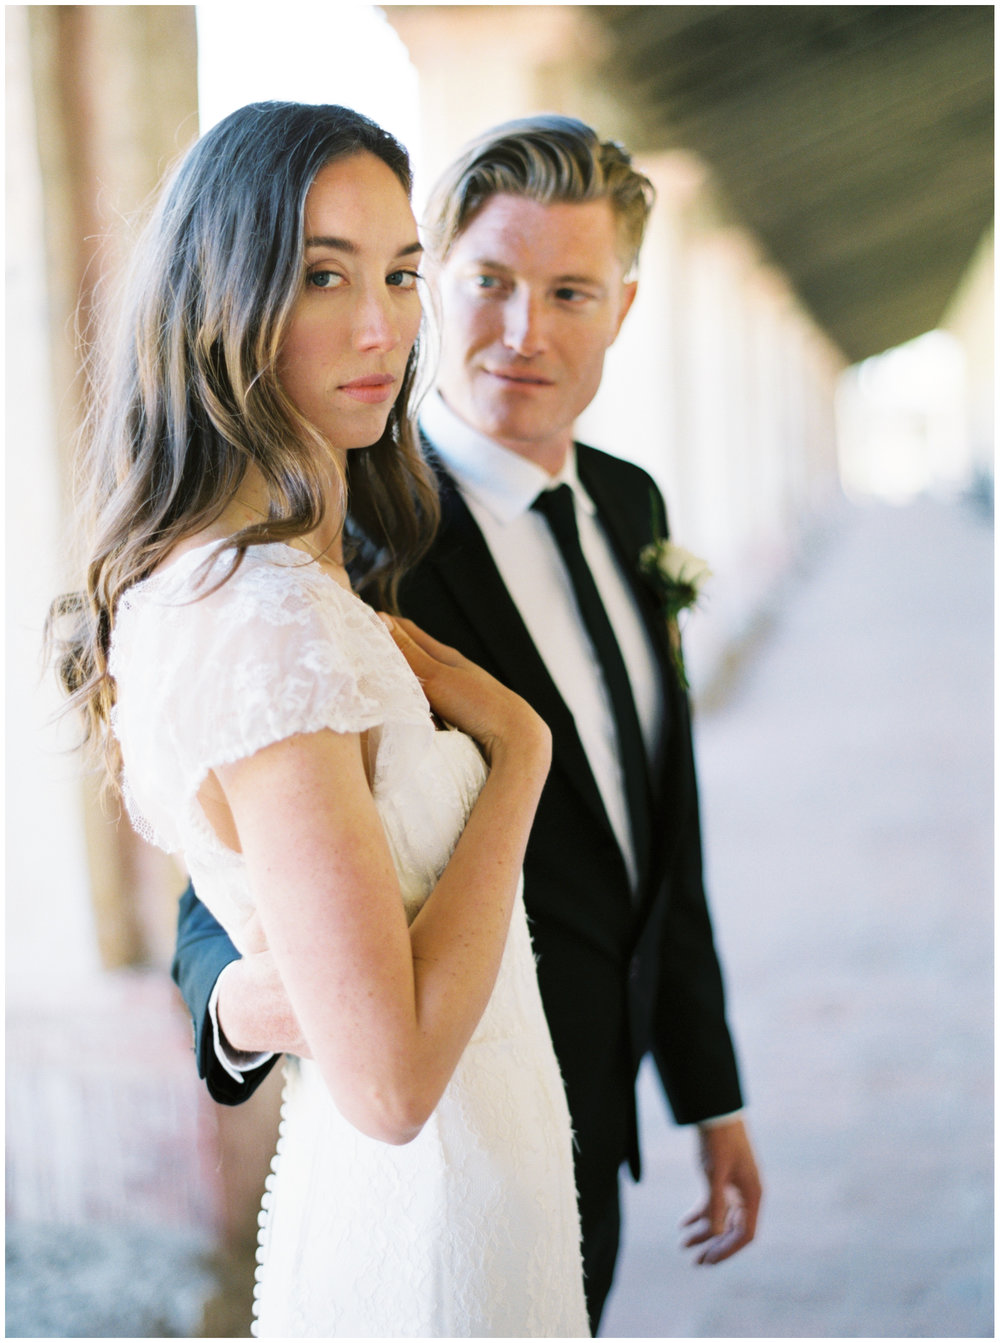 San_Francisco_Wedding_Photographer_Pinnel_Photography_La_Purisima-8.jpg